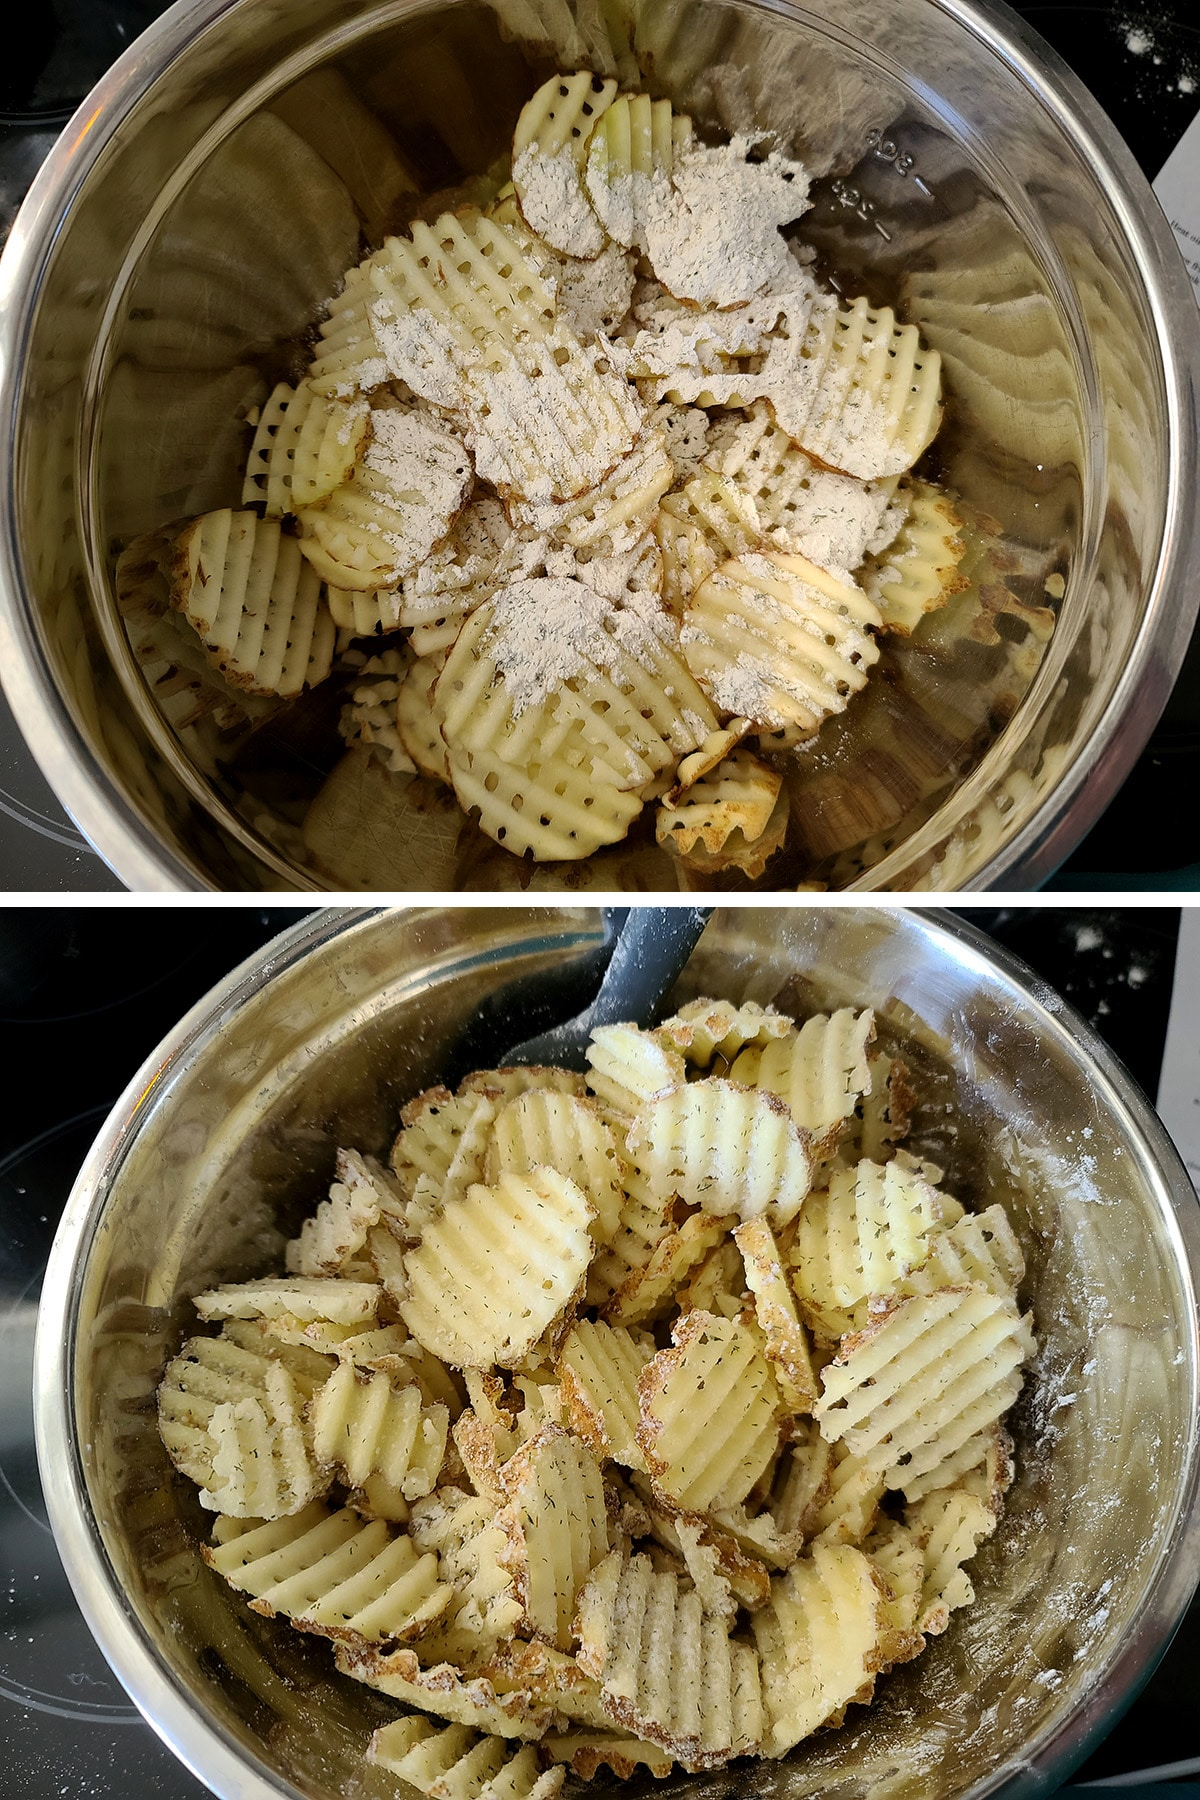 A two part compilation image showing a metal bowl of waffle cut potatoes, with coating mix. In the first image, it's measured on top of the potatoes, in the second, it;s been tossed to coat them.